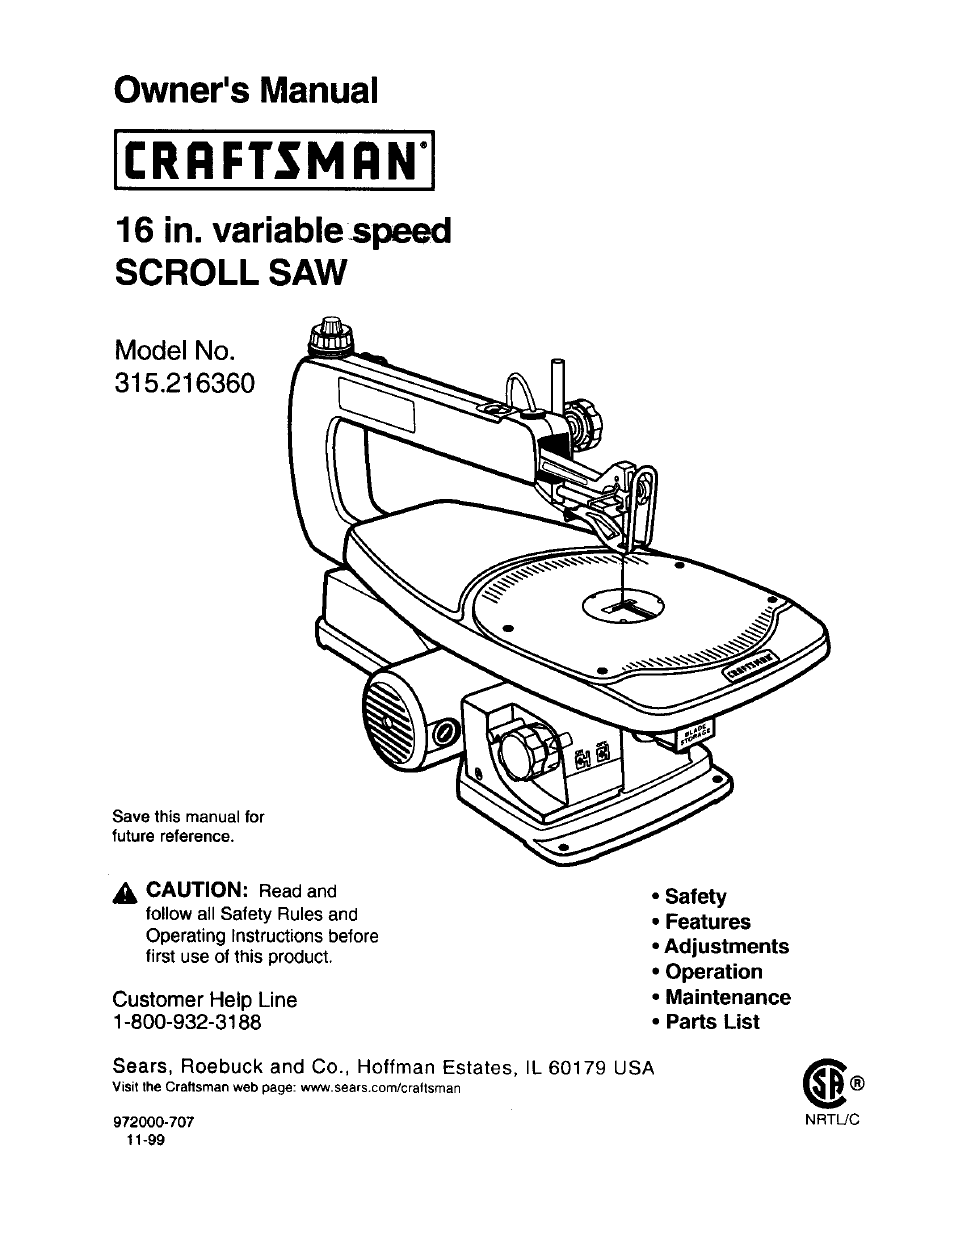 Craftsman 315216360 user manual 26 pages greentooth Image collections